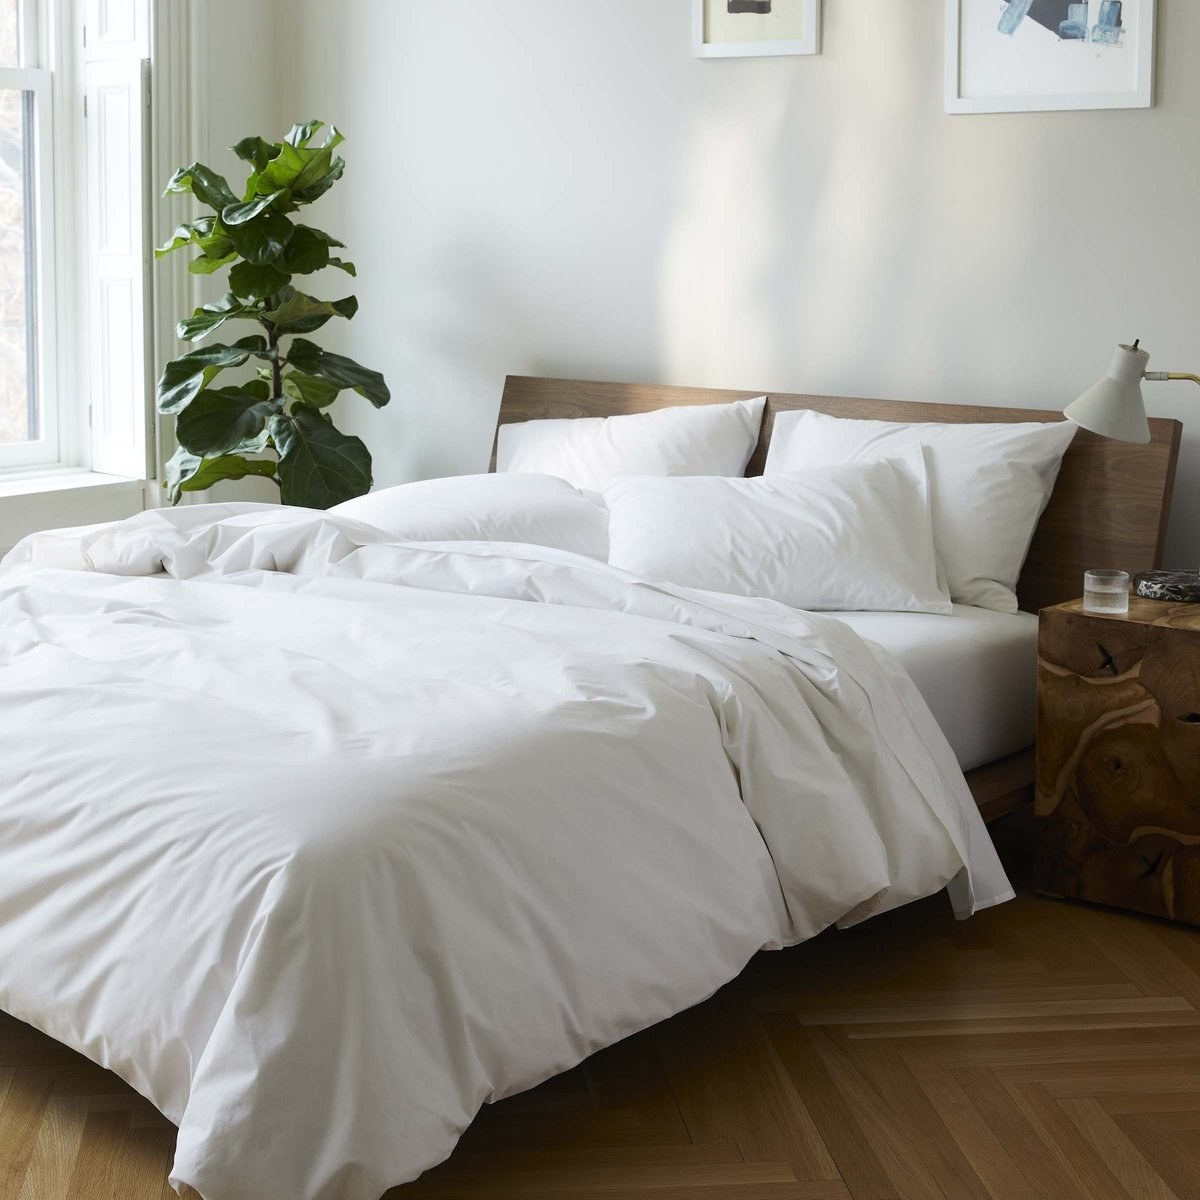 a bed dressed in the luxury bedding set bundle